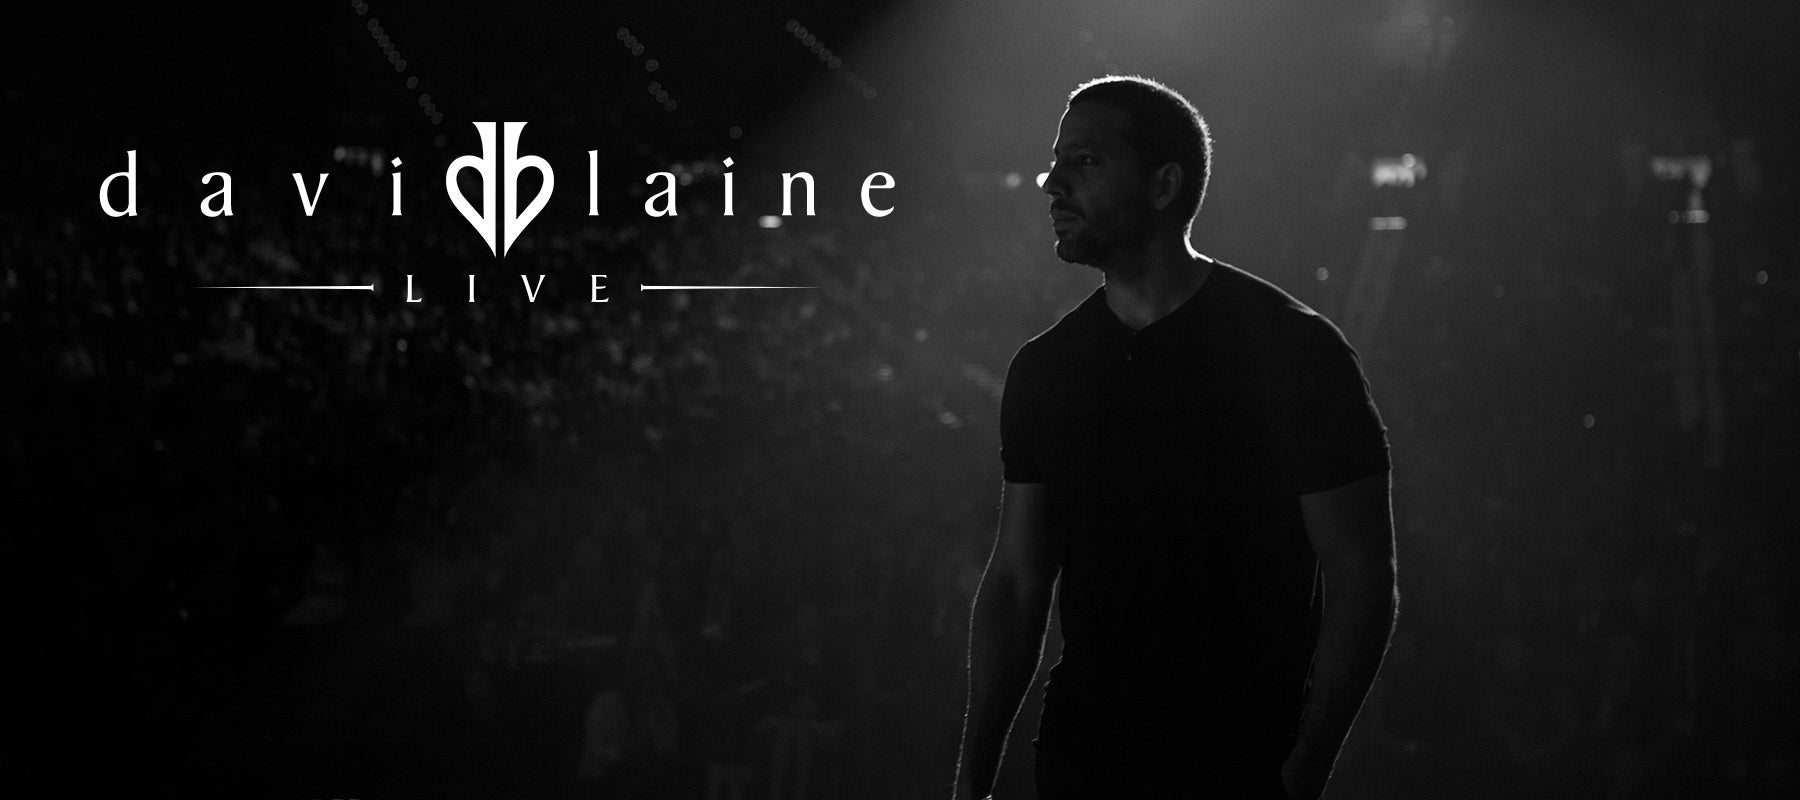 DAVIDBLAINE_spotlight_new.jpg